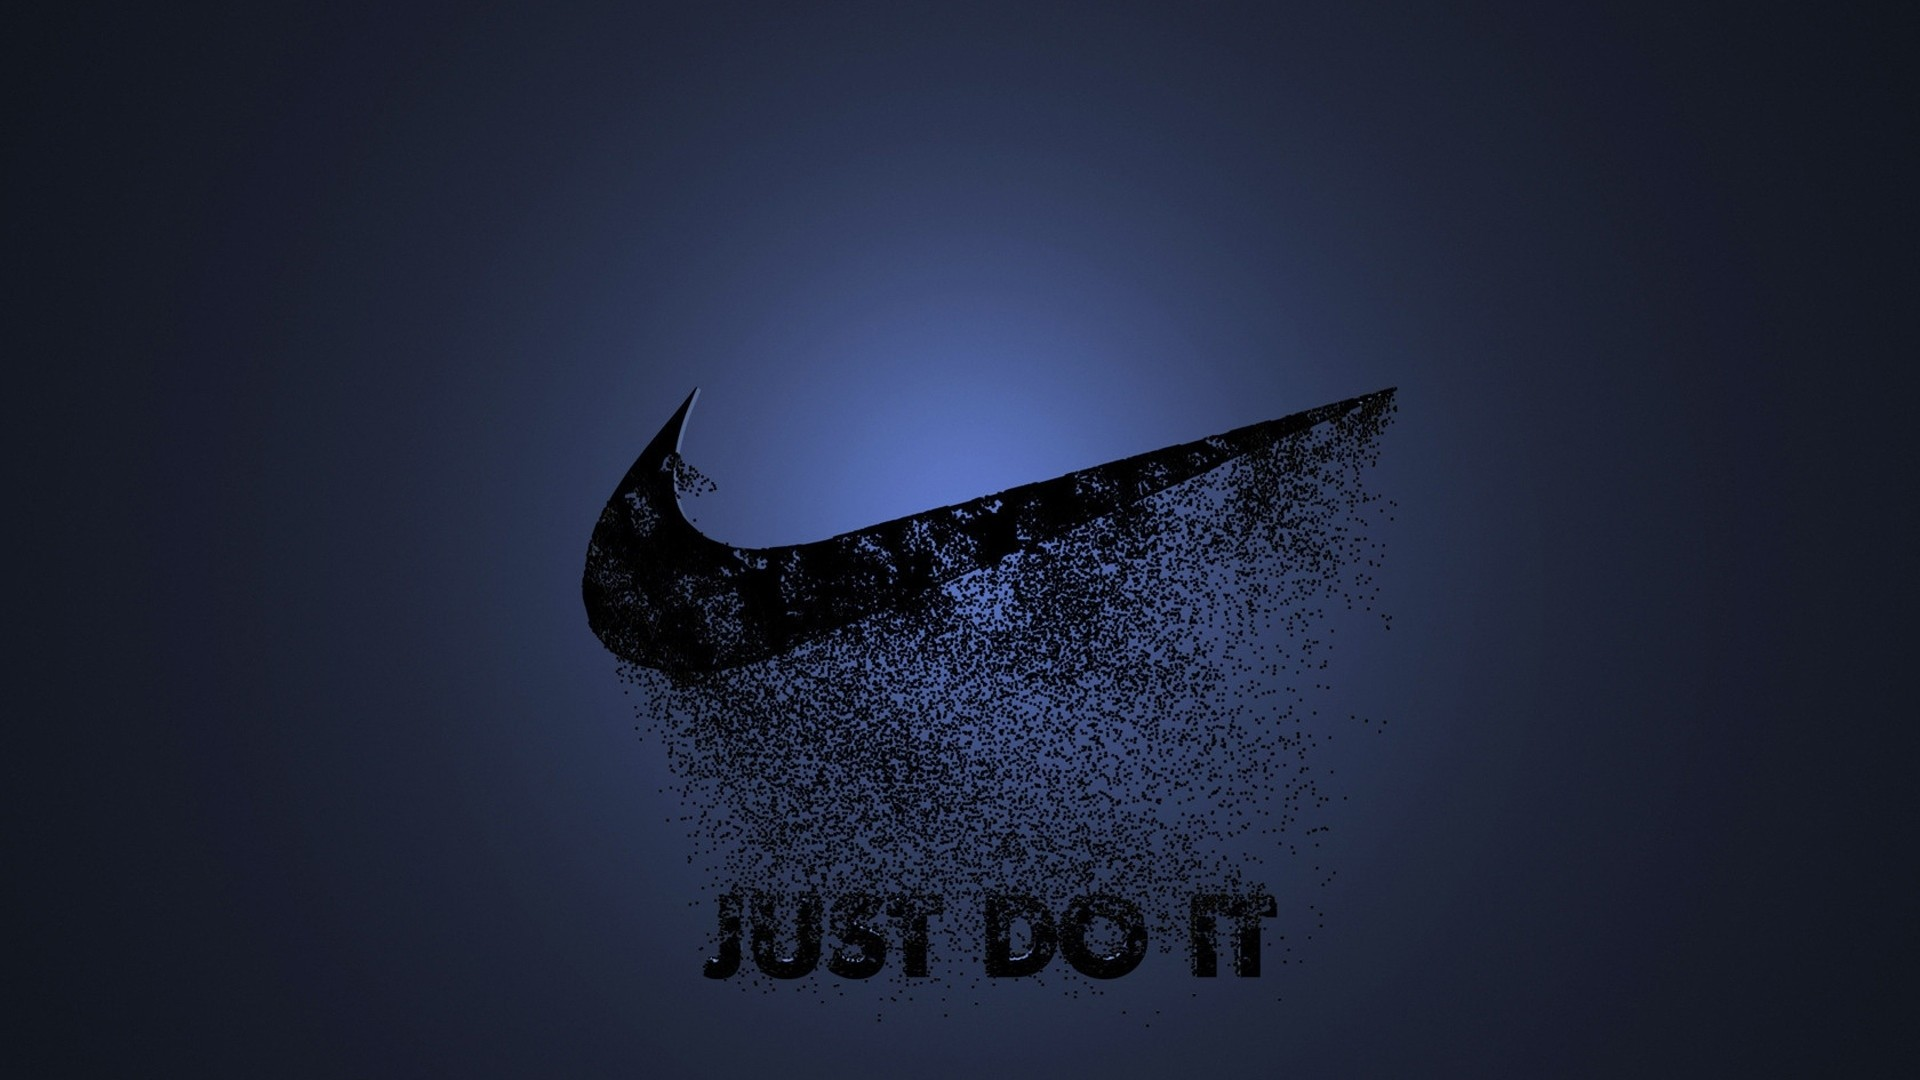 Sport Wallpaper Nike: Nike Wallpaper HD 1080p (75+ Images